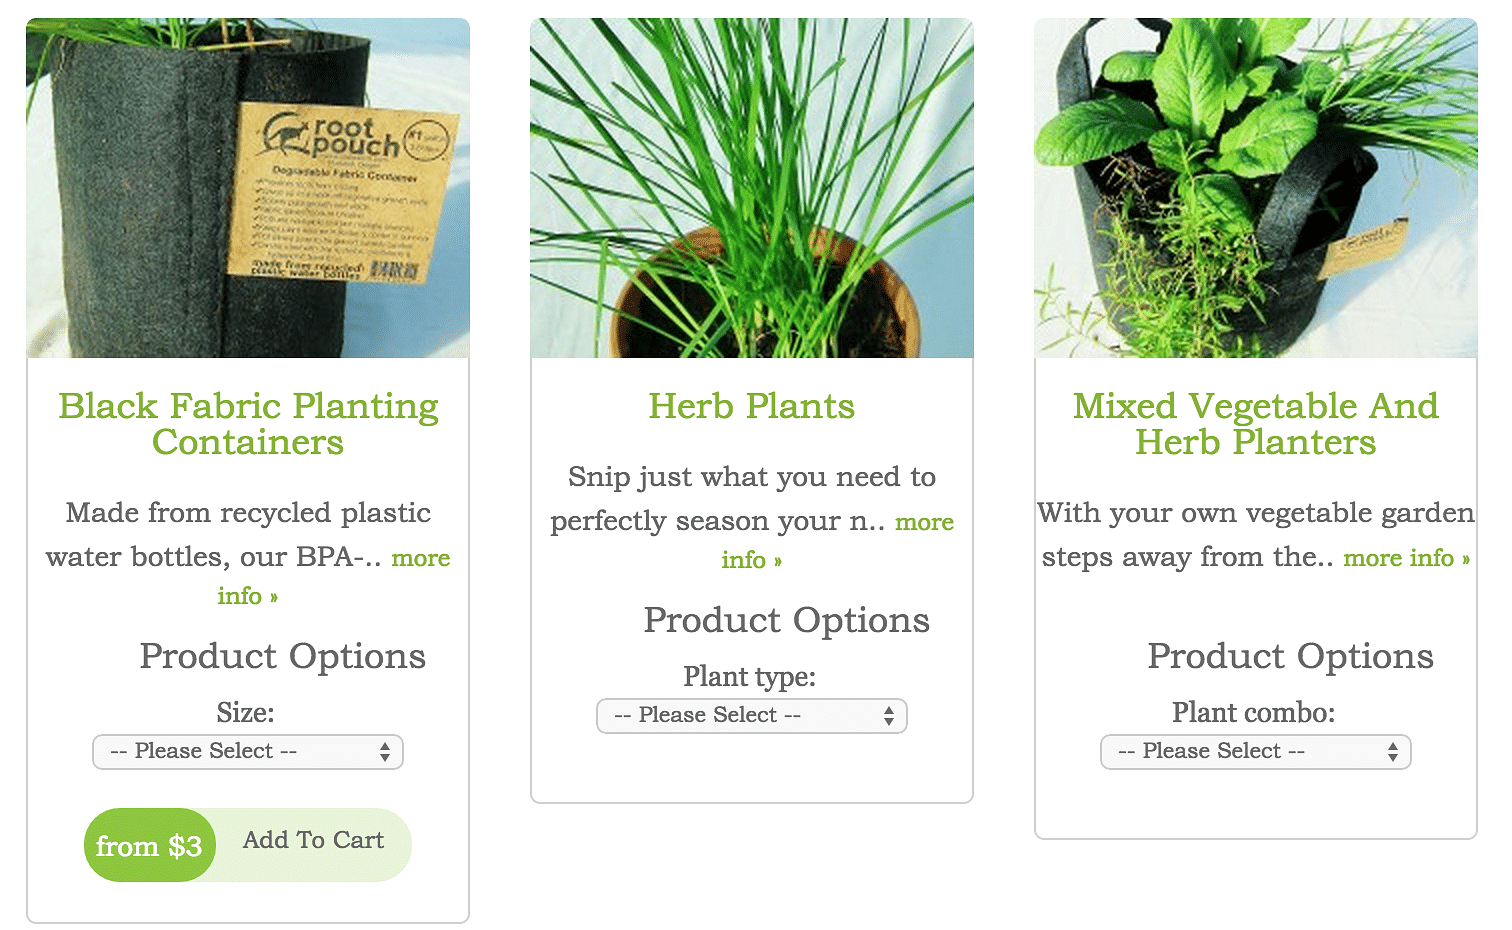 5 great online stores for indoor gardening! | Home & Decor Singapore